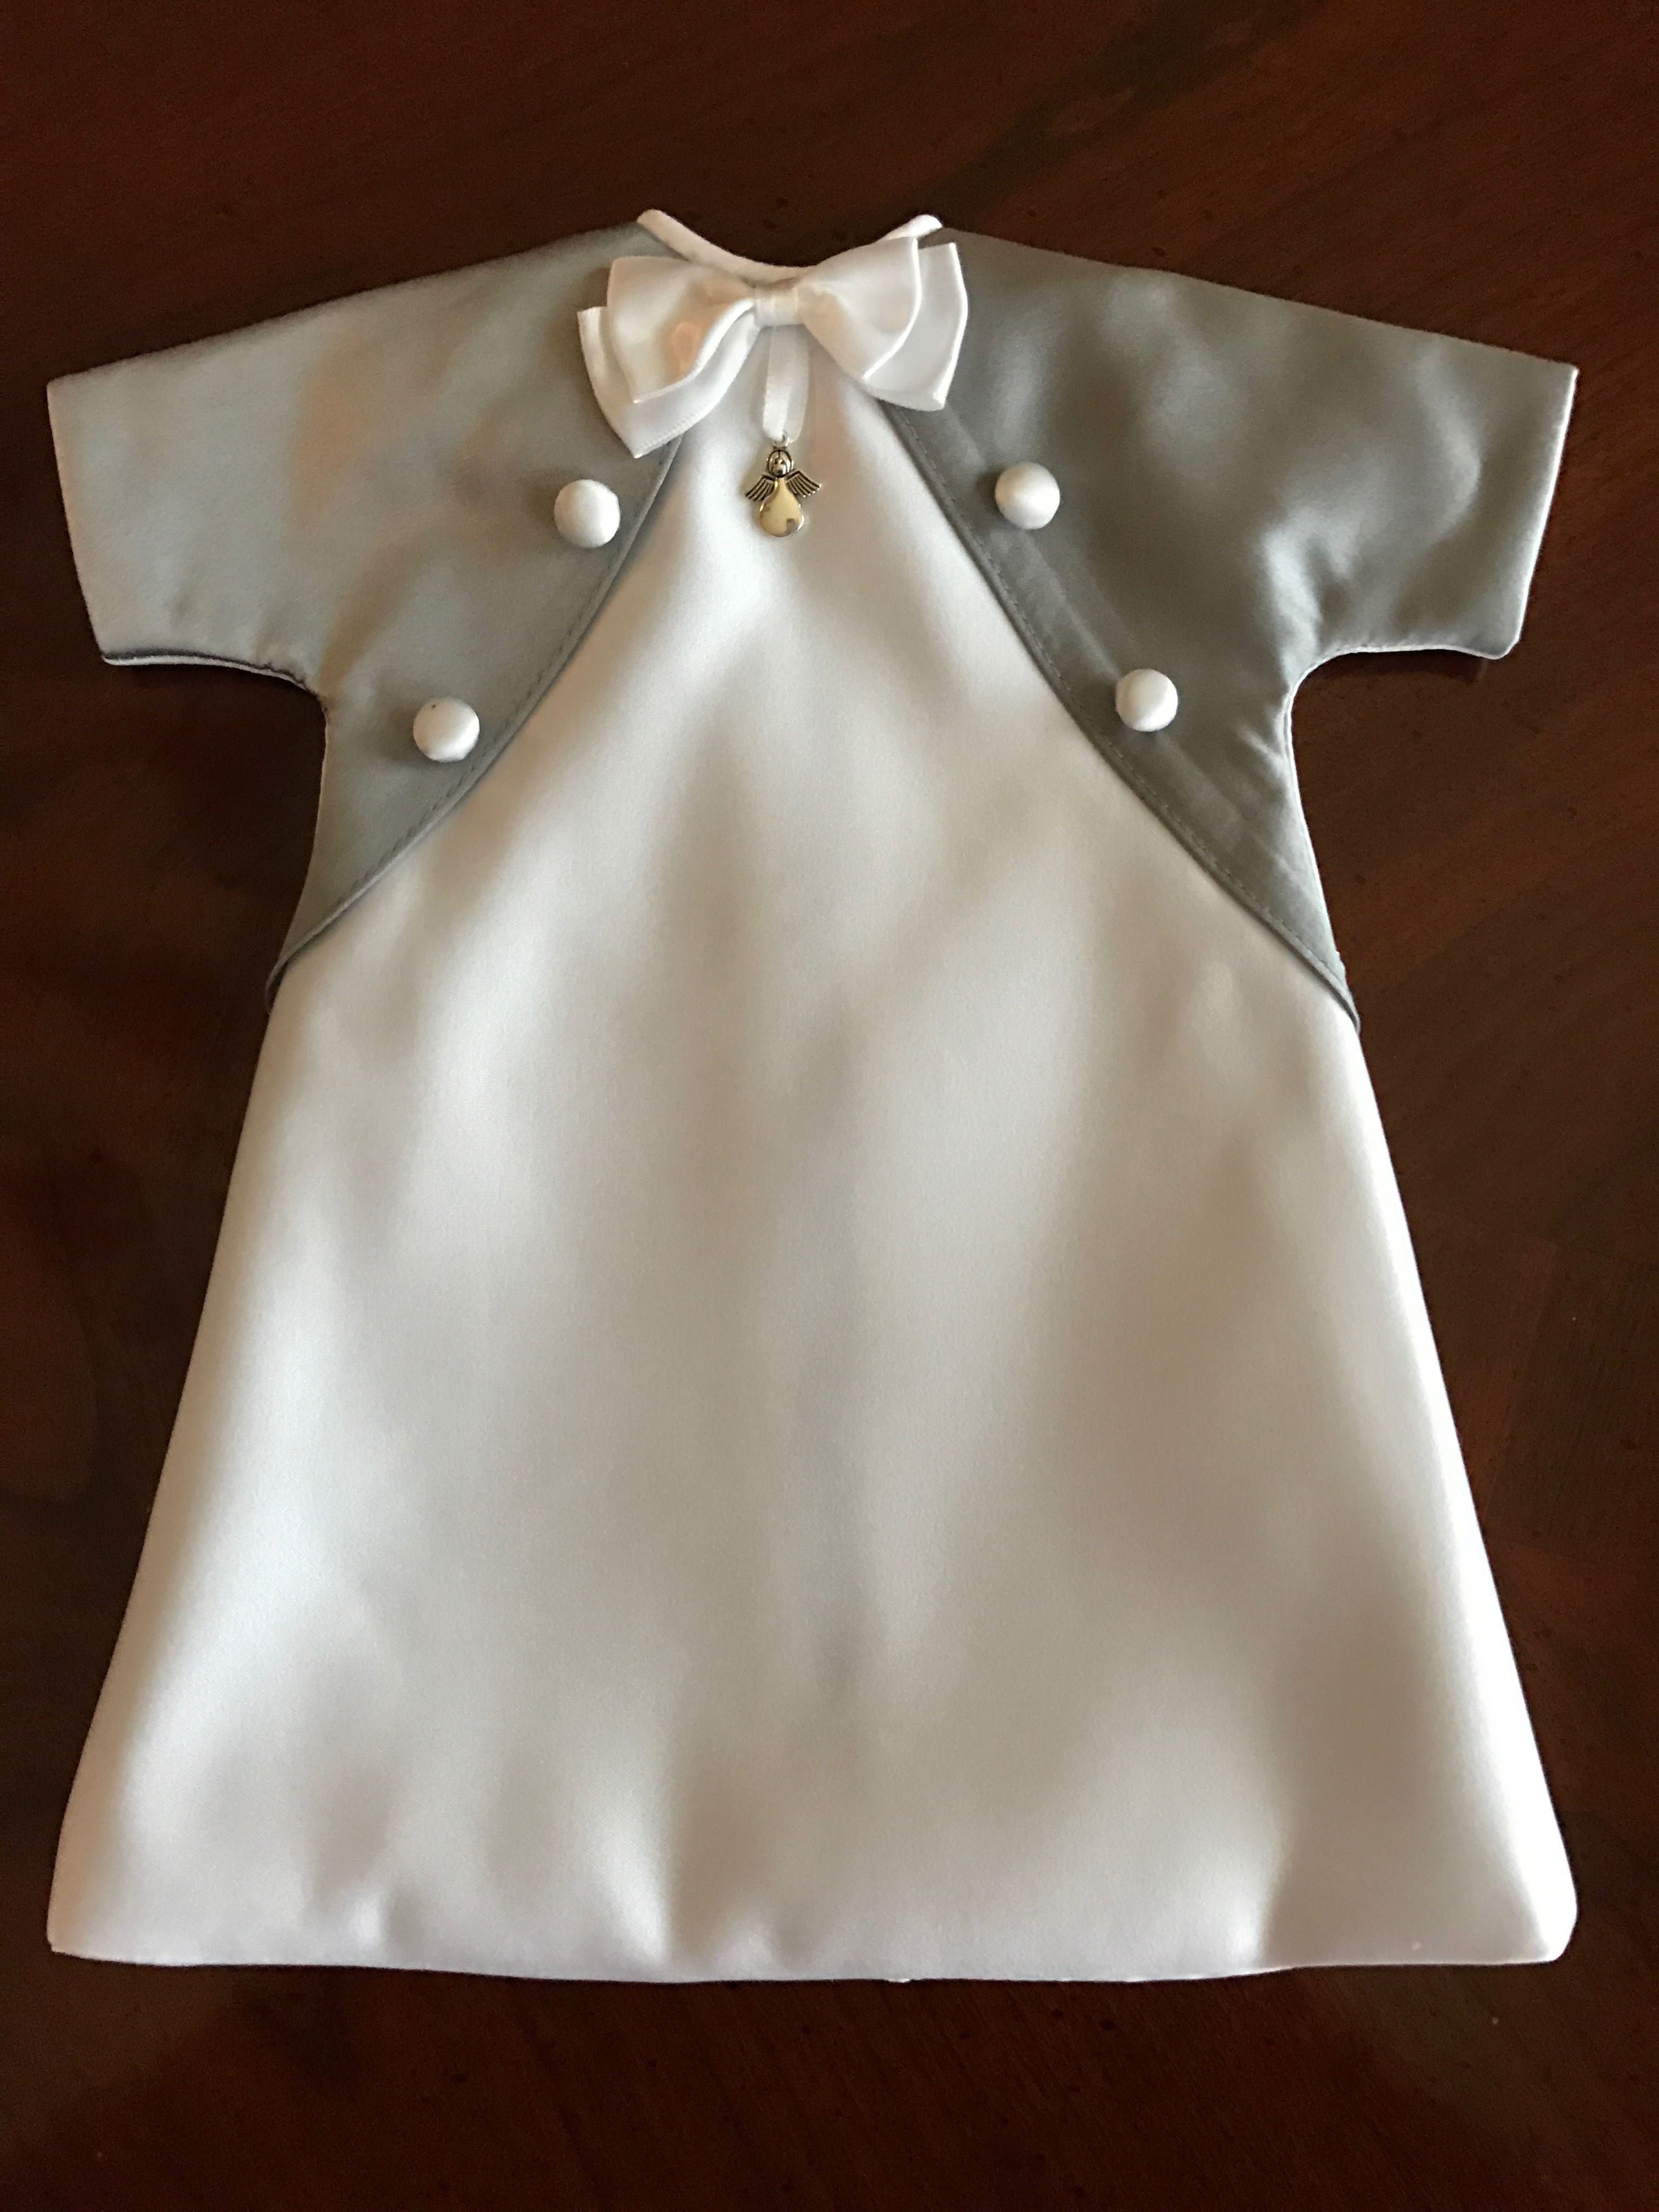 Boy Angel Gown | Preemie | Pinterest | Angel, Gowns and Angel babies